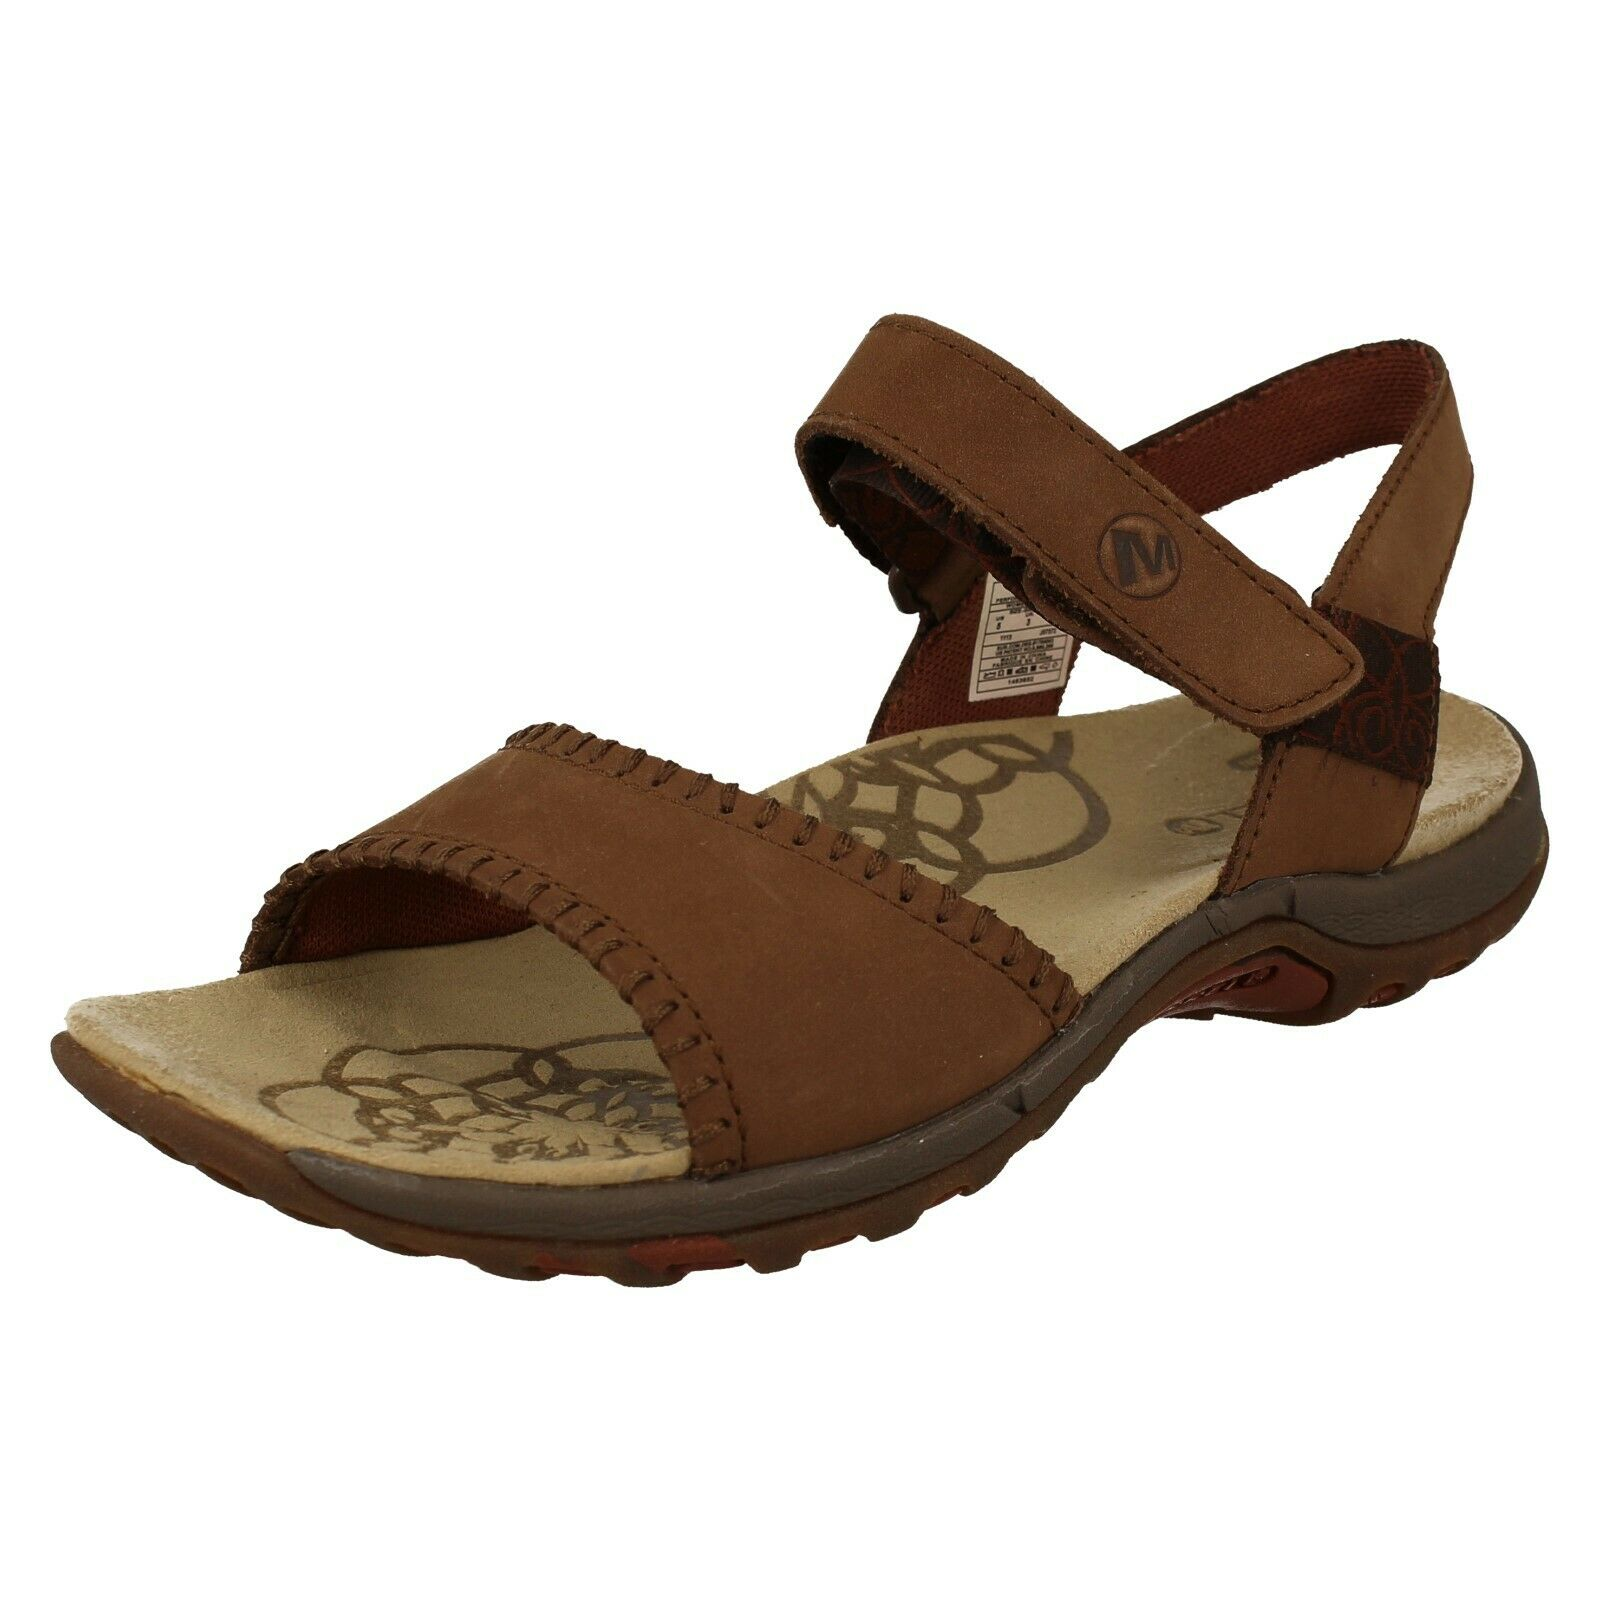 LADIES MERRELL  HIBISCUS J57572 CASUALE SUMMER LEADER WANG OUTHERPORTA SANDALS  Sconto del 70%